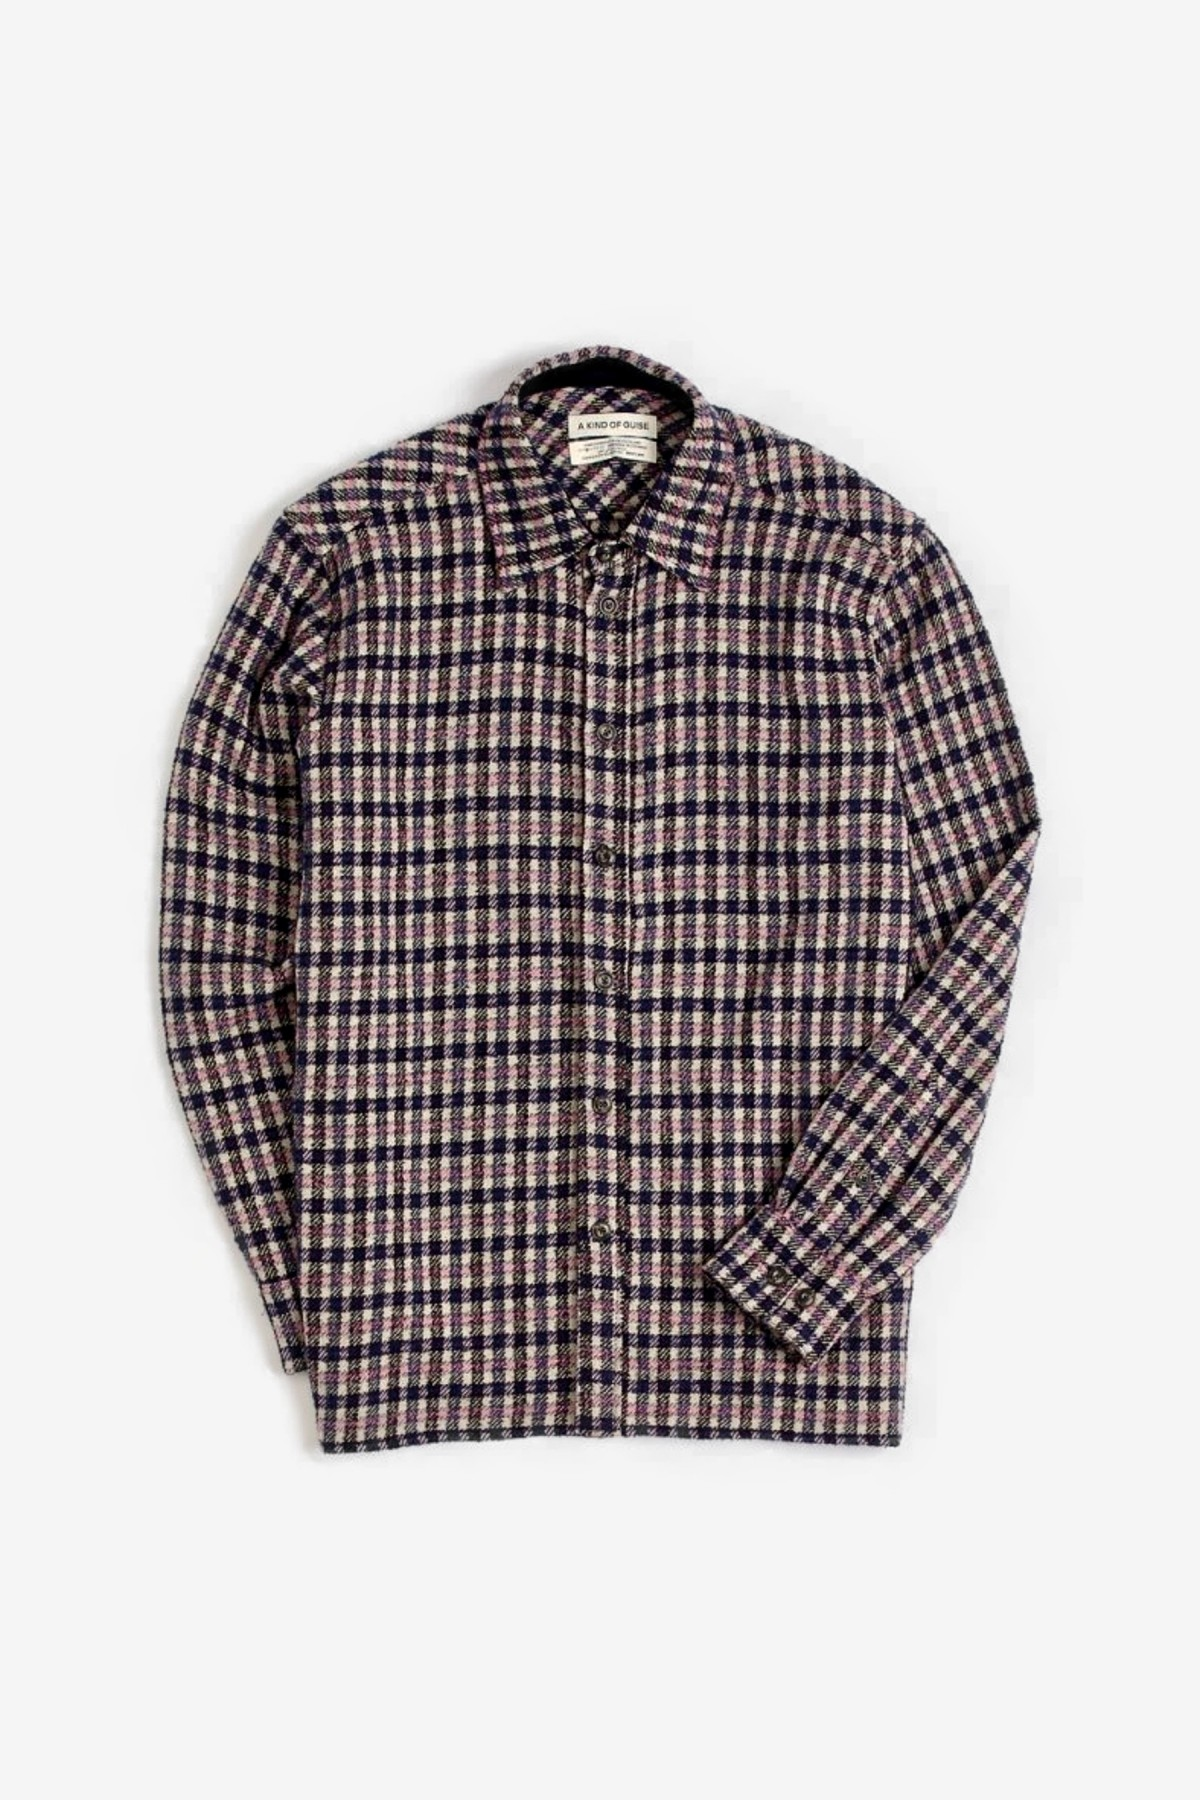 A Kind of Guise Dullu Shirt in Lavender Check